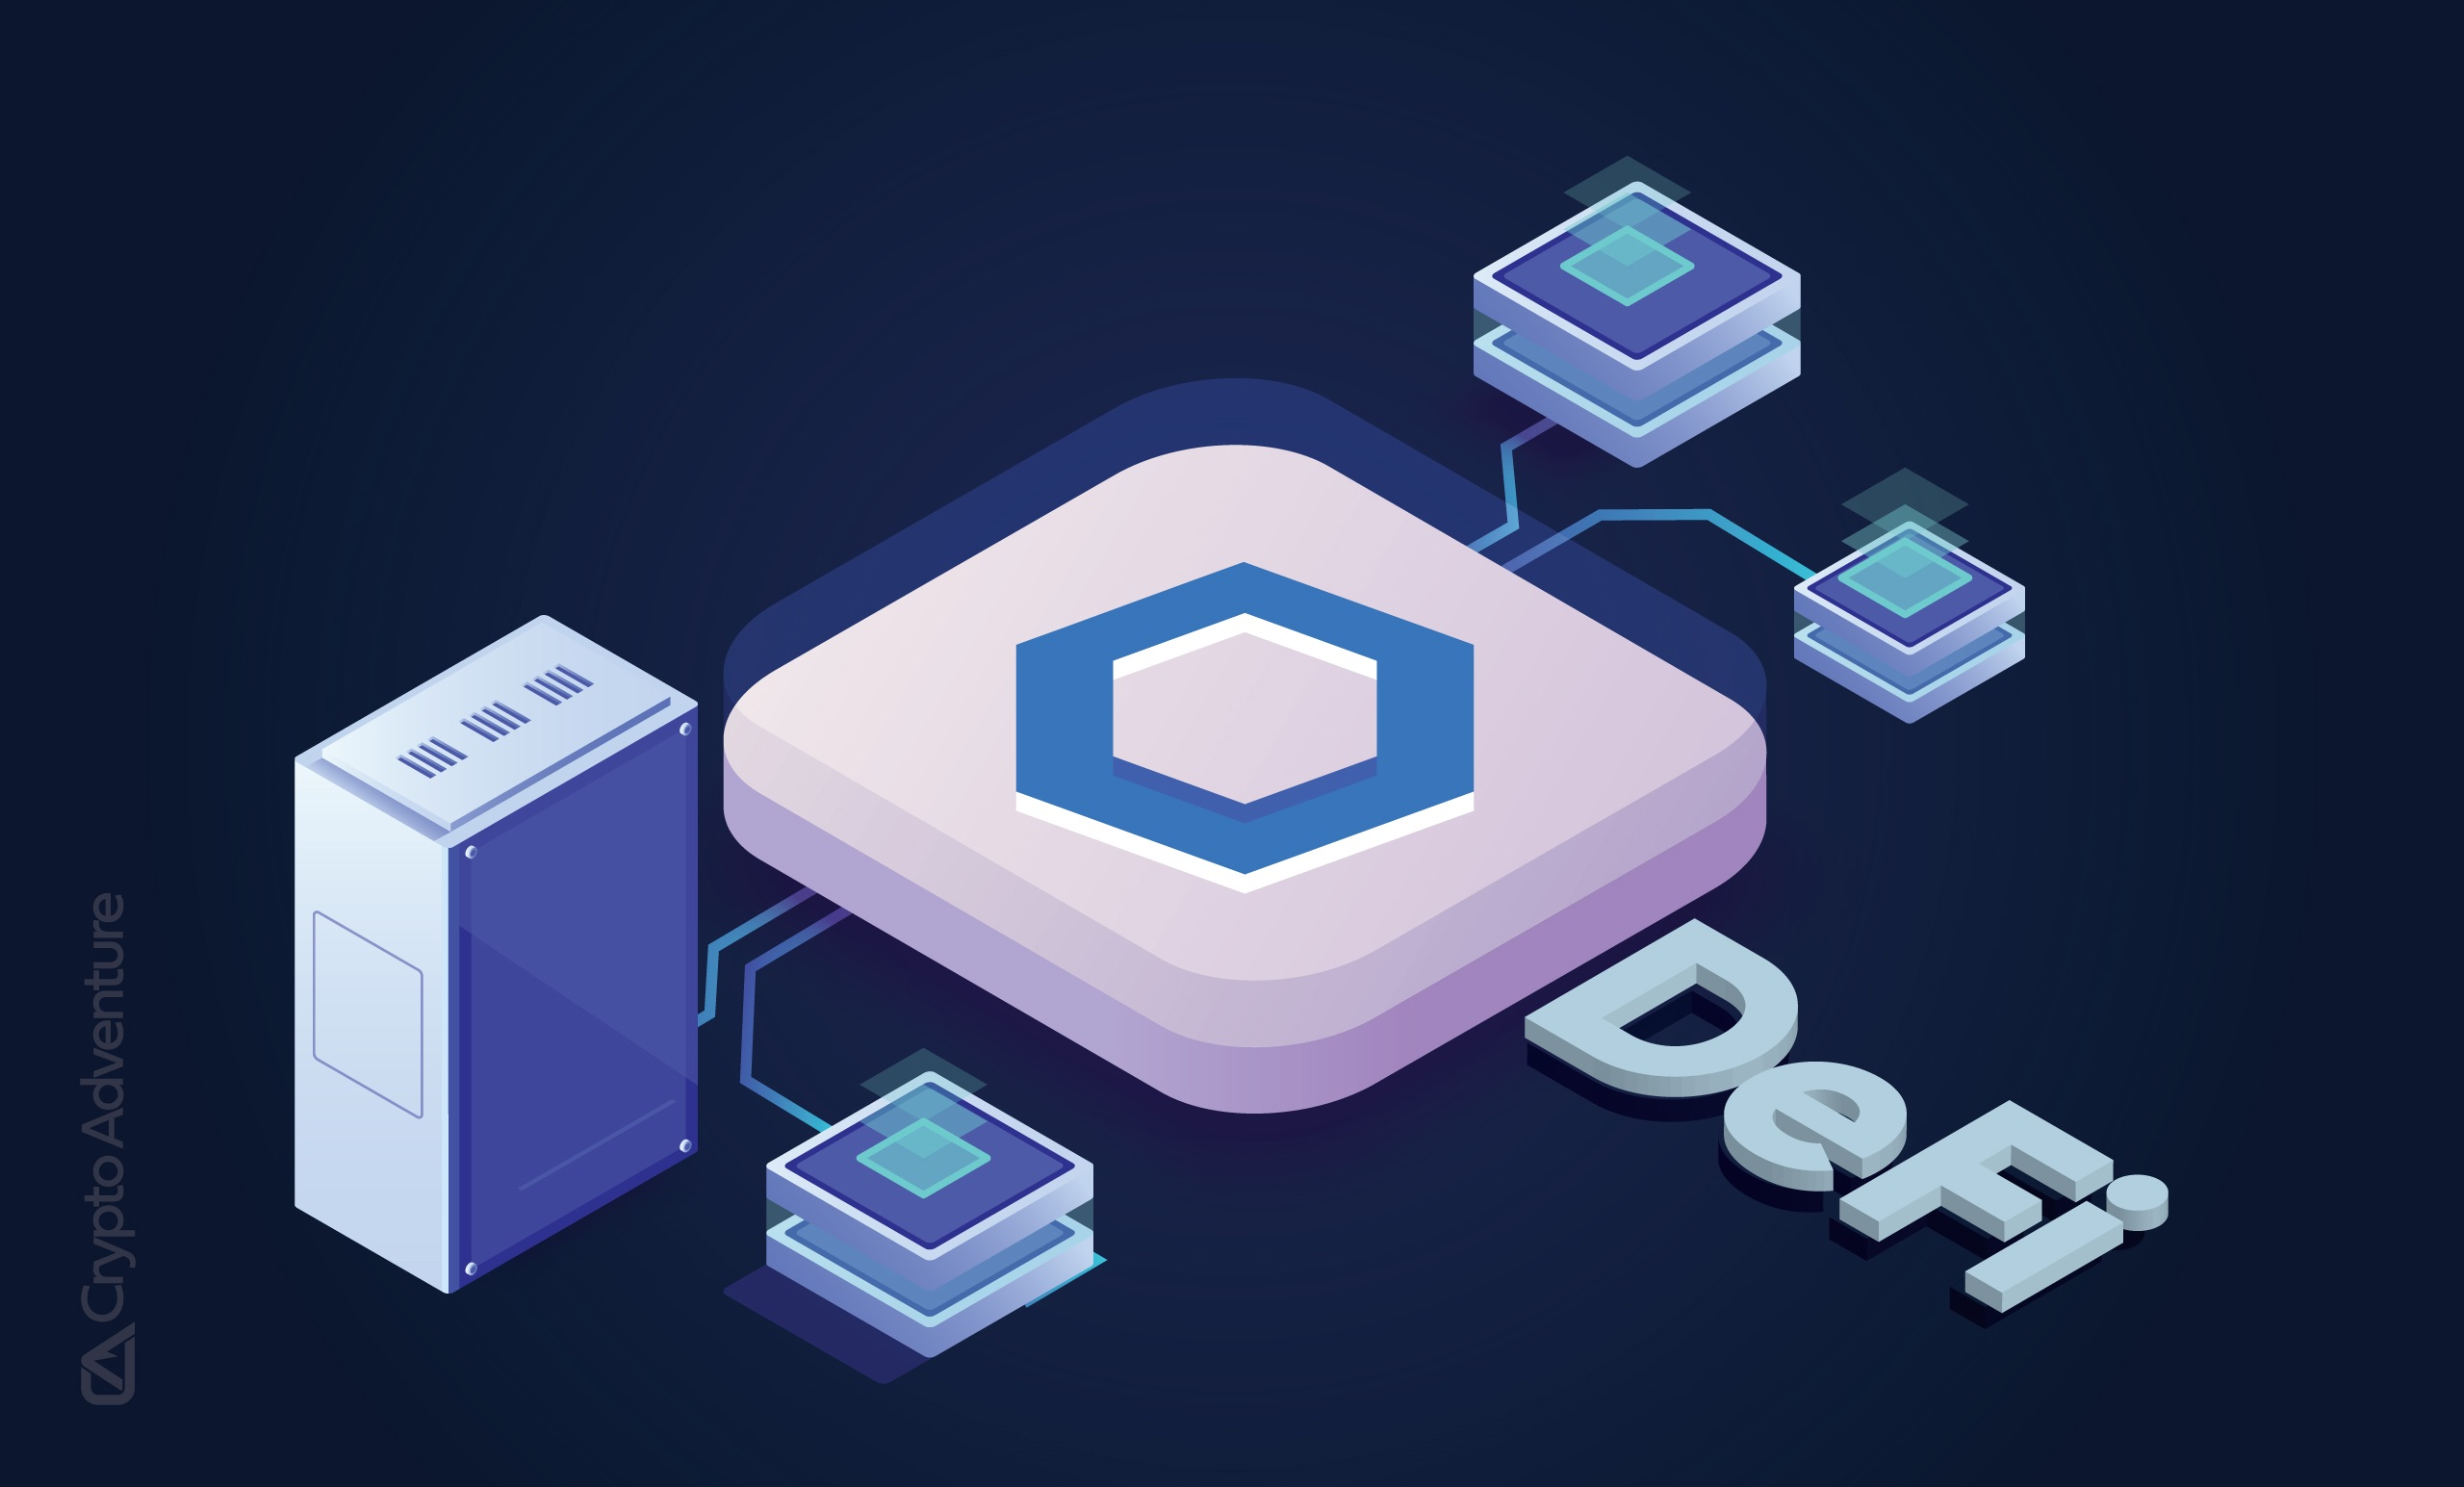 /how-defi-projects-use-chainlink-oracles-vk1p371m feature image